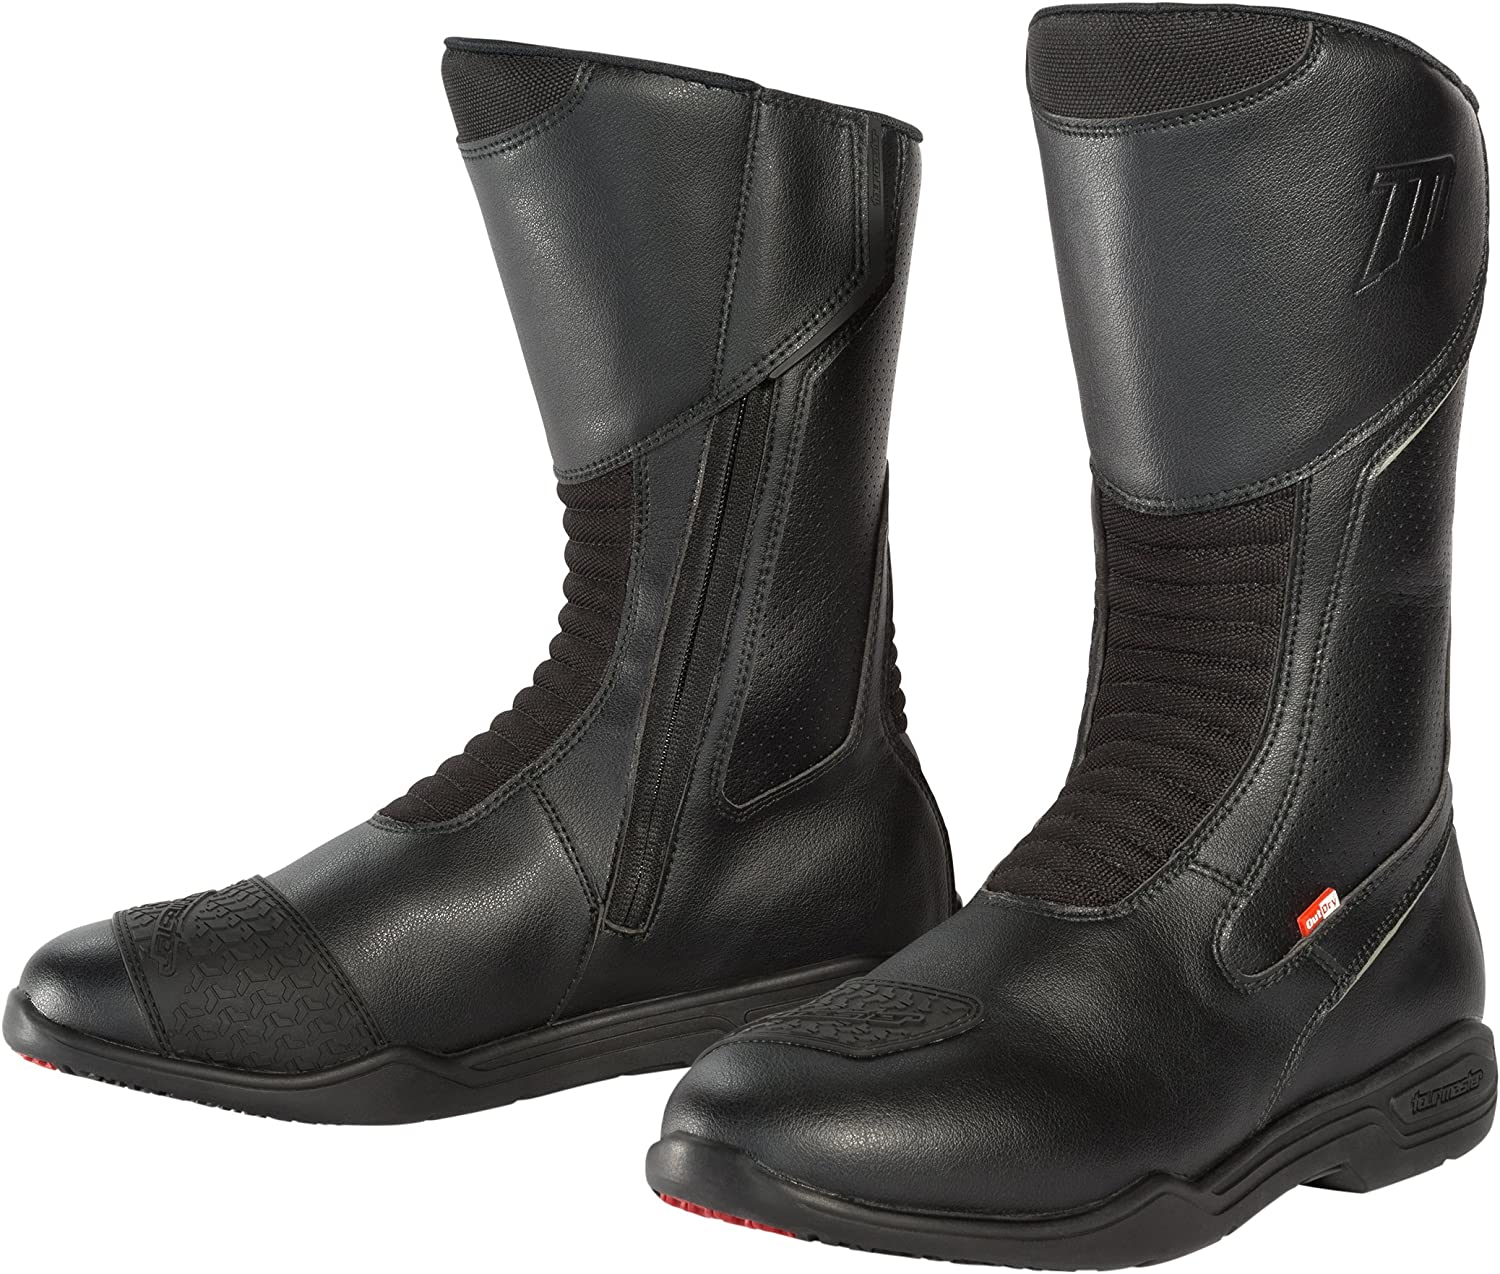 TourMaster Mens Epic Touring Motorcycle Boots Black, Size 11W